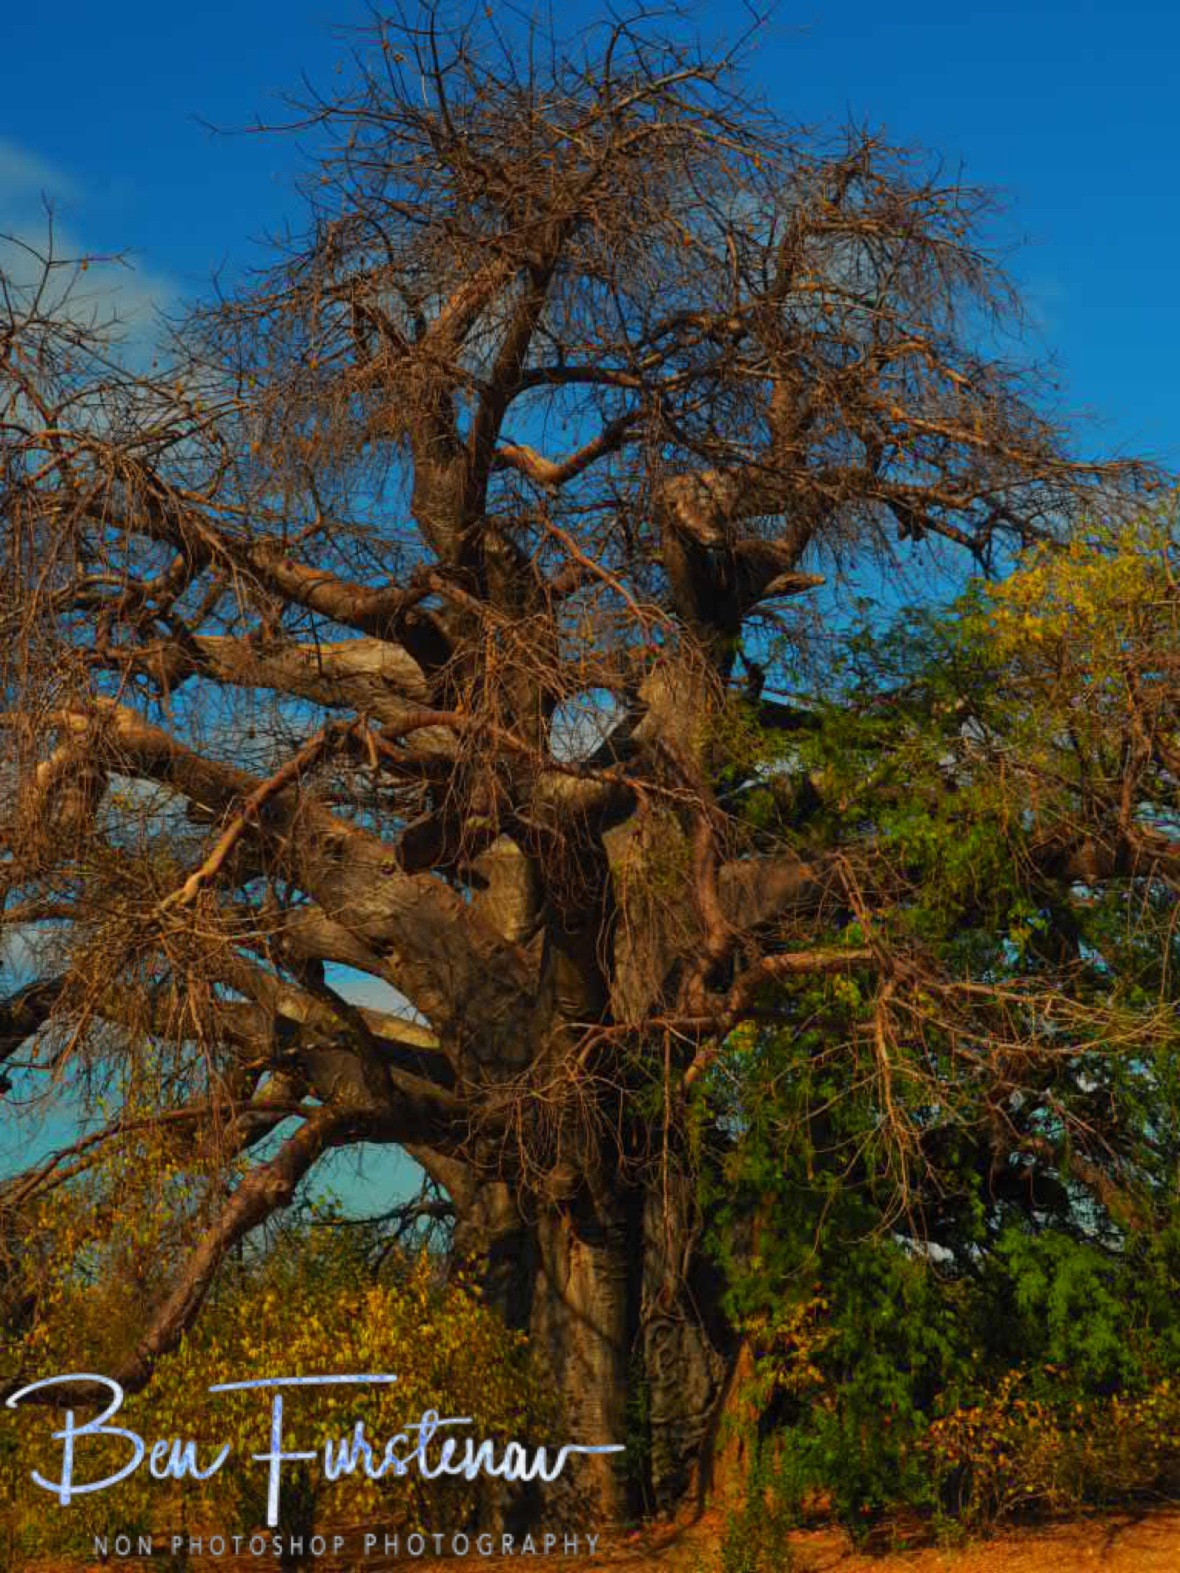 A truly old giant, Tete, Mozambique